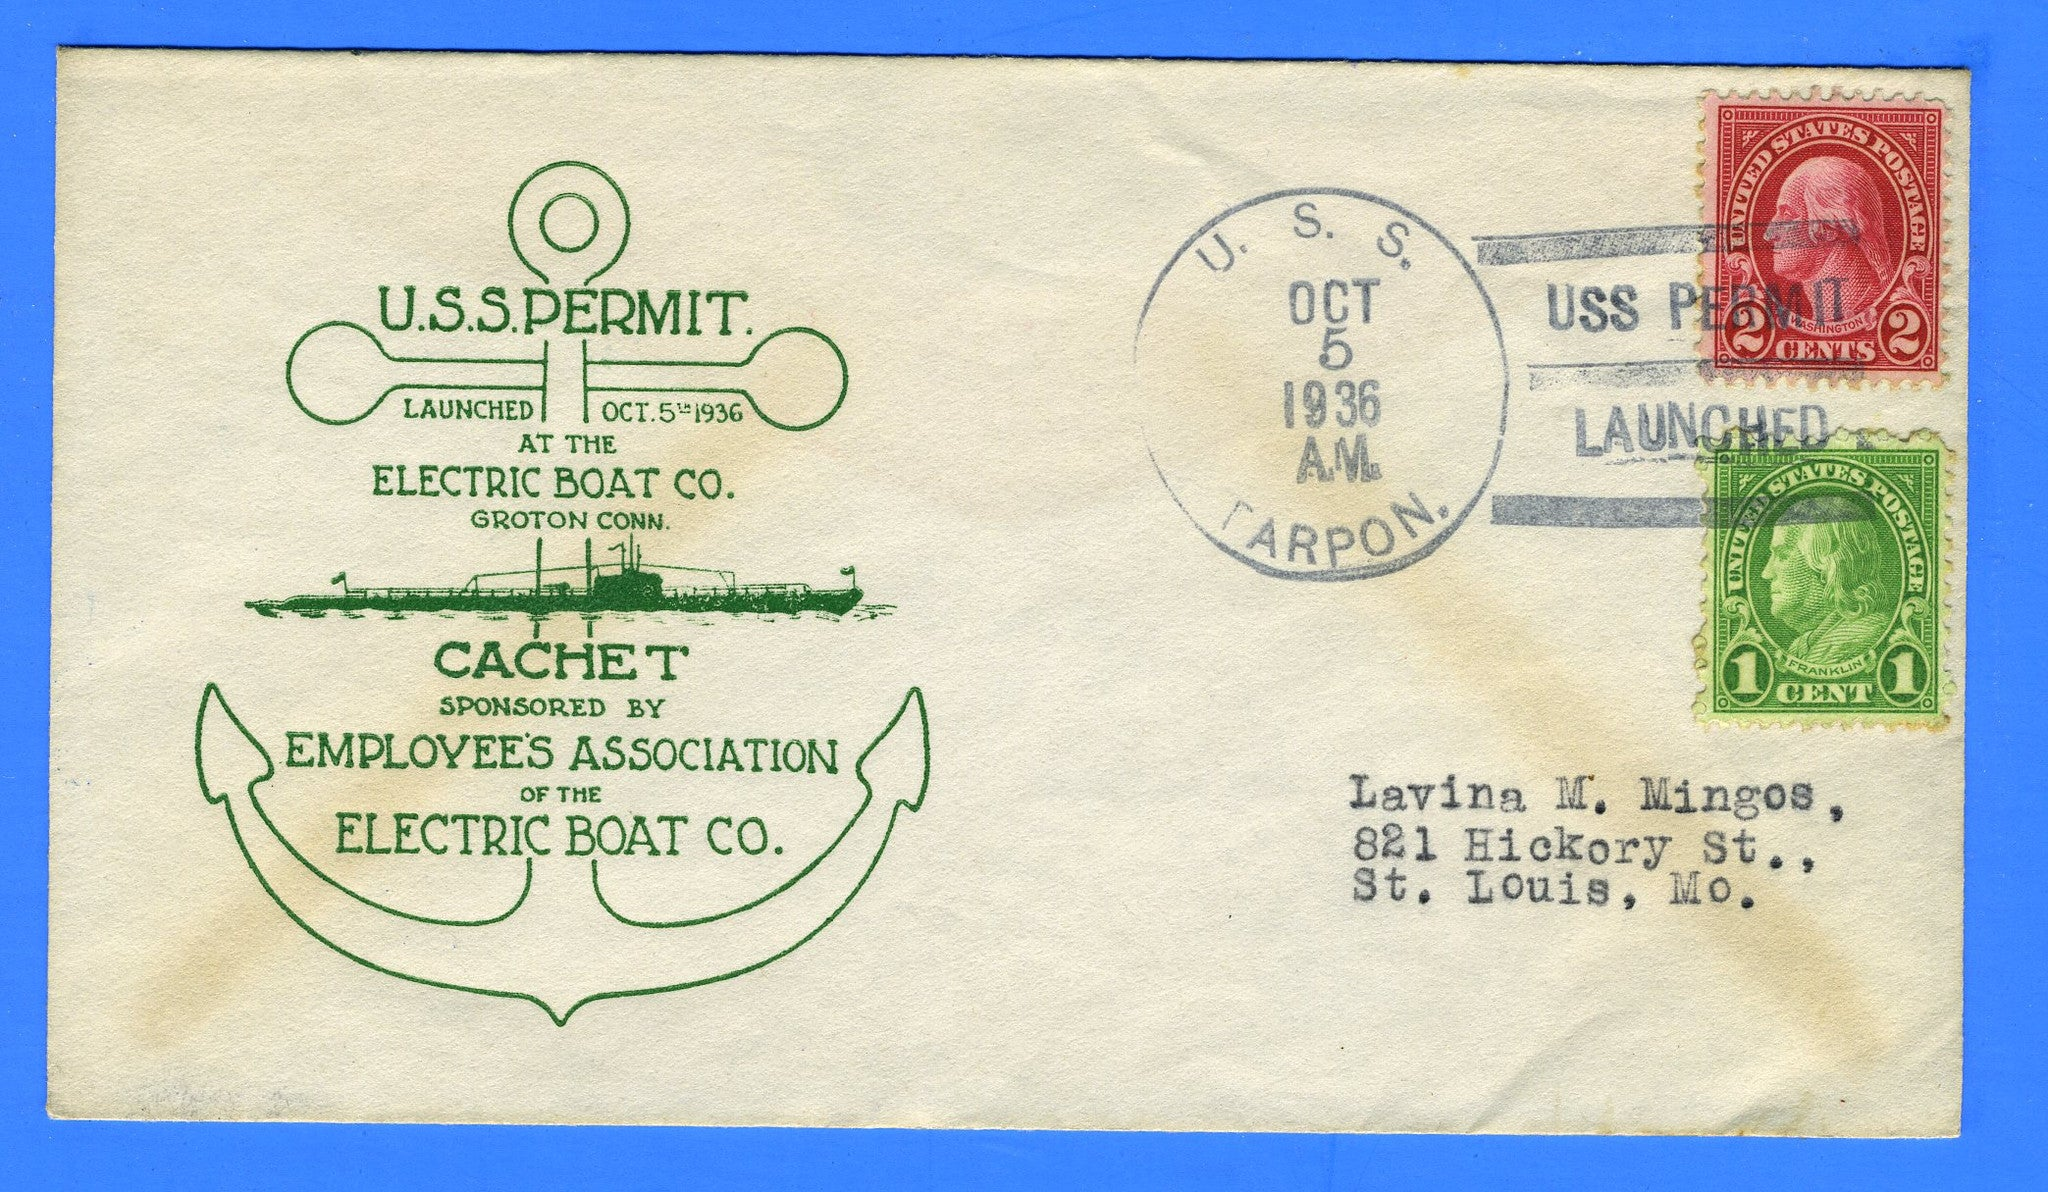 USS Permit SS-178 Launched Oct 5, 1936 - USS Tarpon Cancel